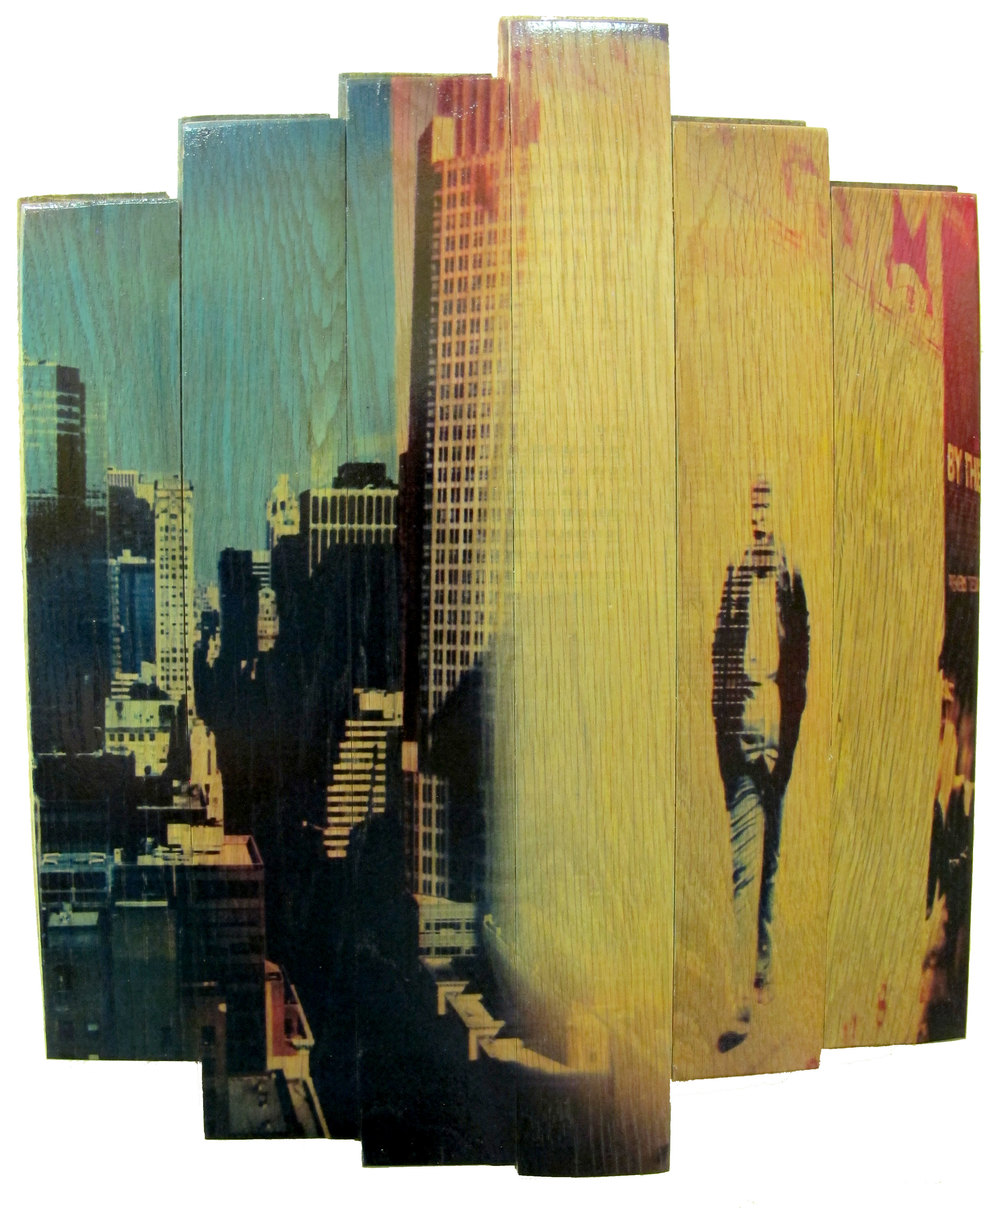 City Slicker,  2016 c print on reclaimed wood floor 17 x 14 x 1.5 in / 43 x 35.5 x 4 cm  Unique